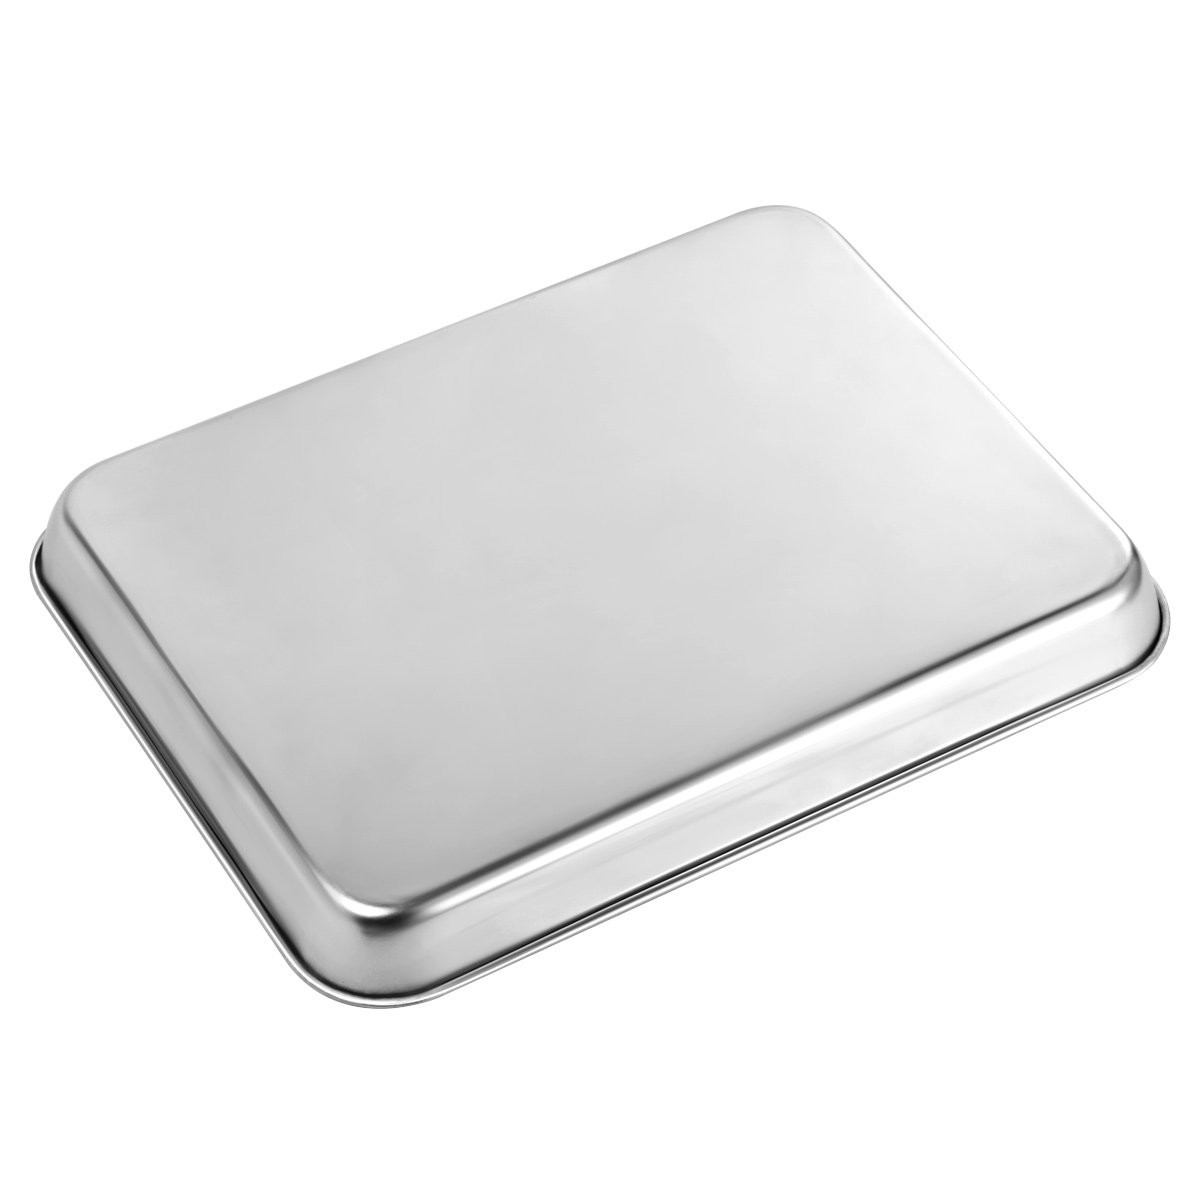 Stainless Steel Baking Sheets, HKJ Chef Baking Pans & Cookie Sheets for Oven & Mini Toaster Oven Tray Pans & Non Toxic & Healthy,Superior Mirror & Easy Clean by HKJ Chef (Image #6)